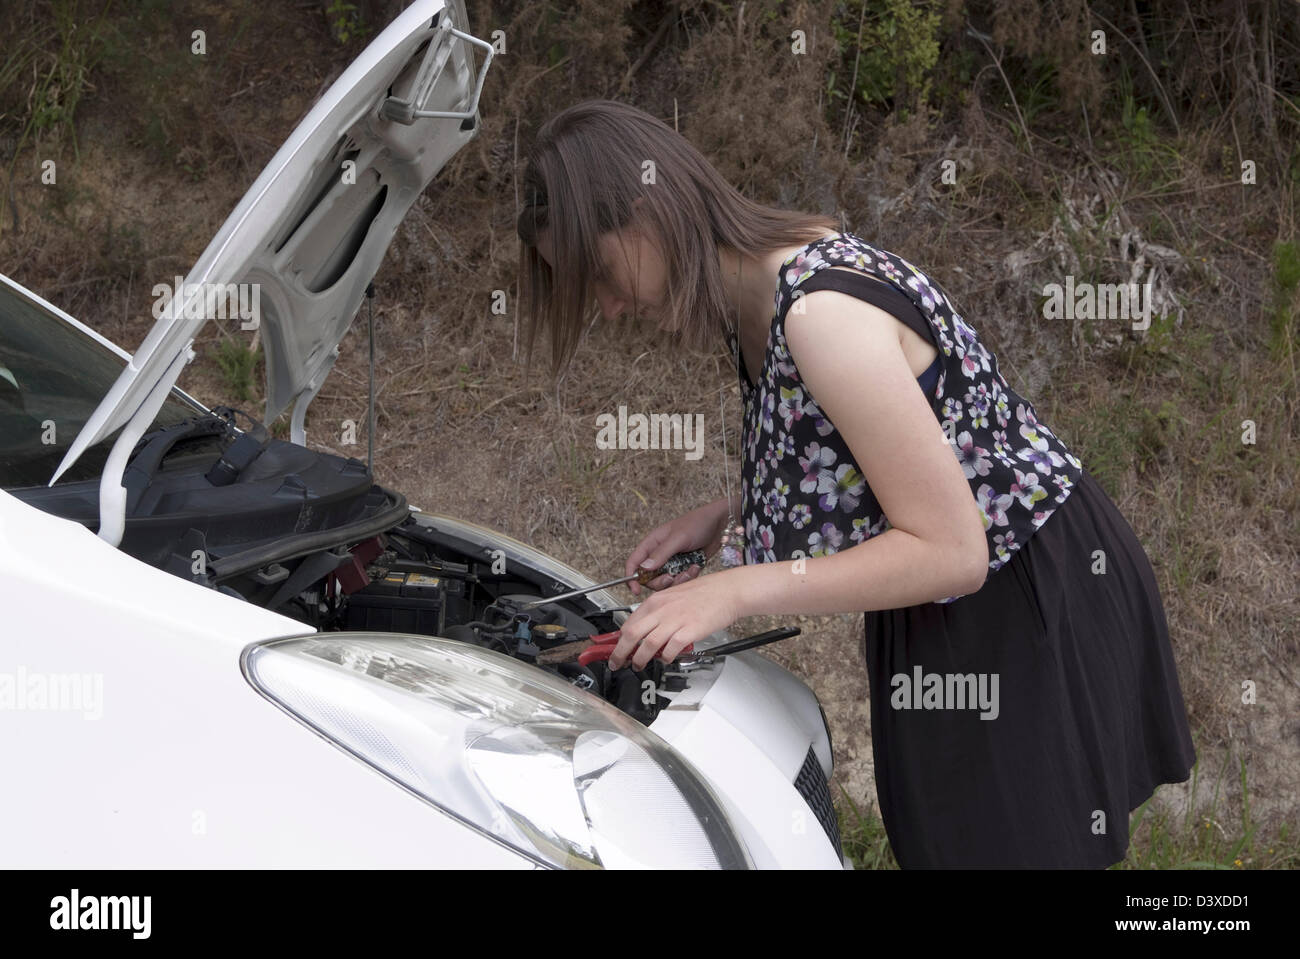 A young adult woman uses a screwdriver to fix her broken down car. - Stock Image